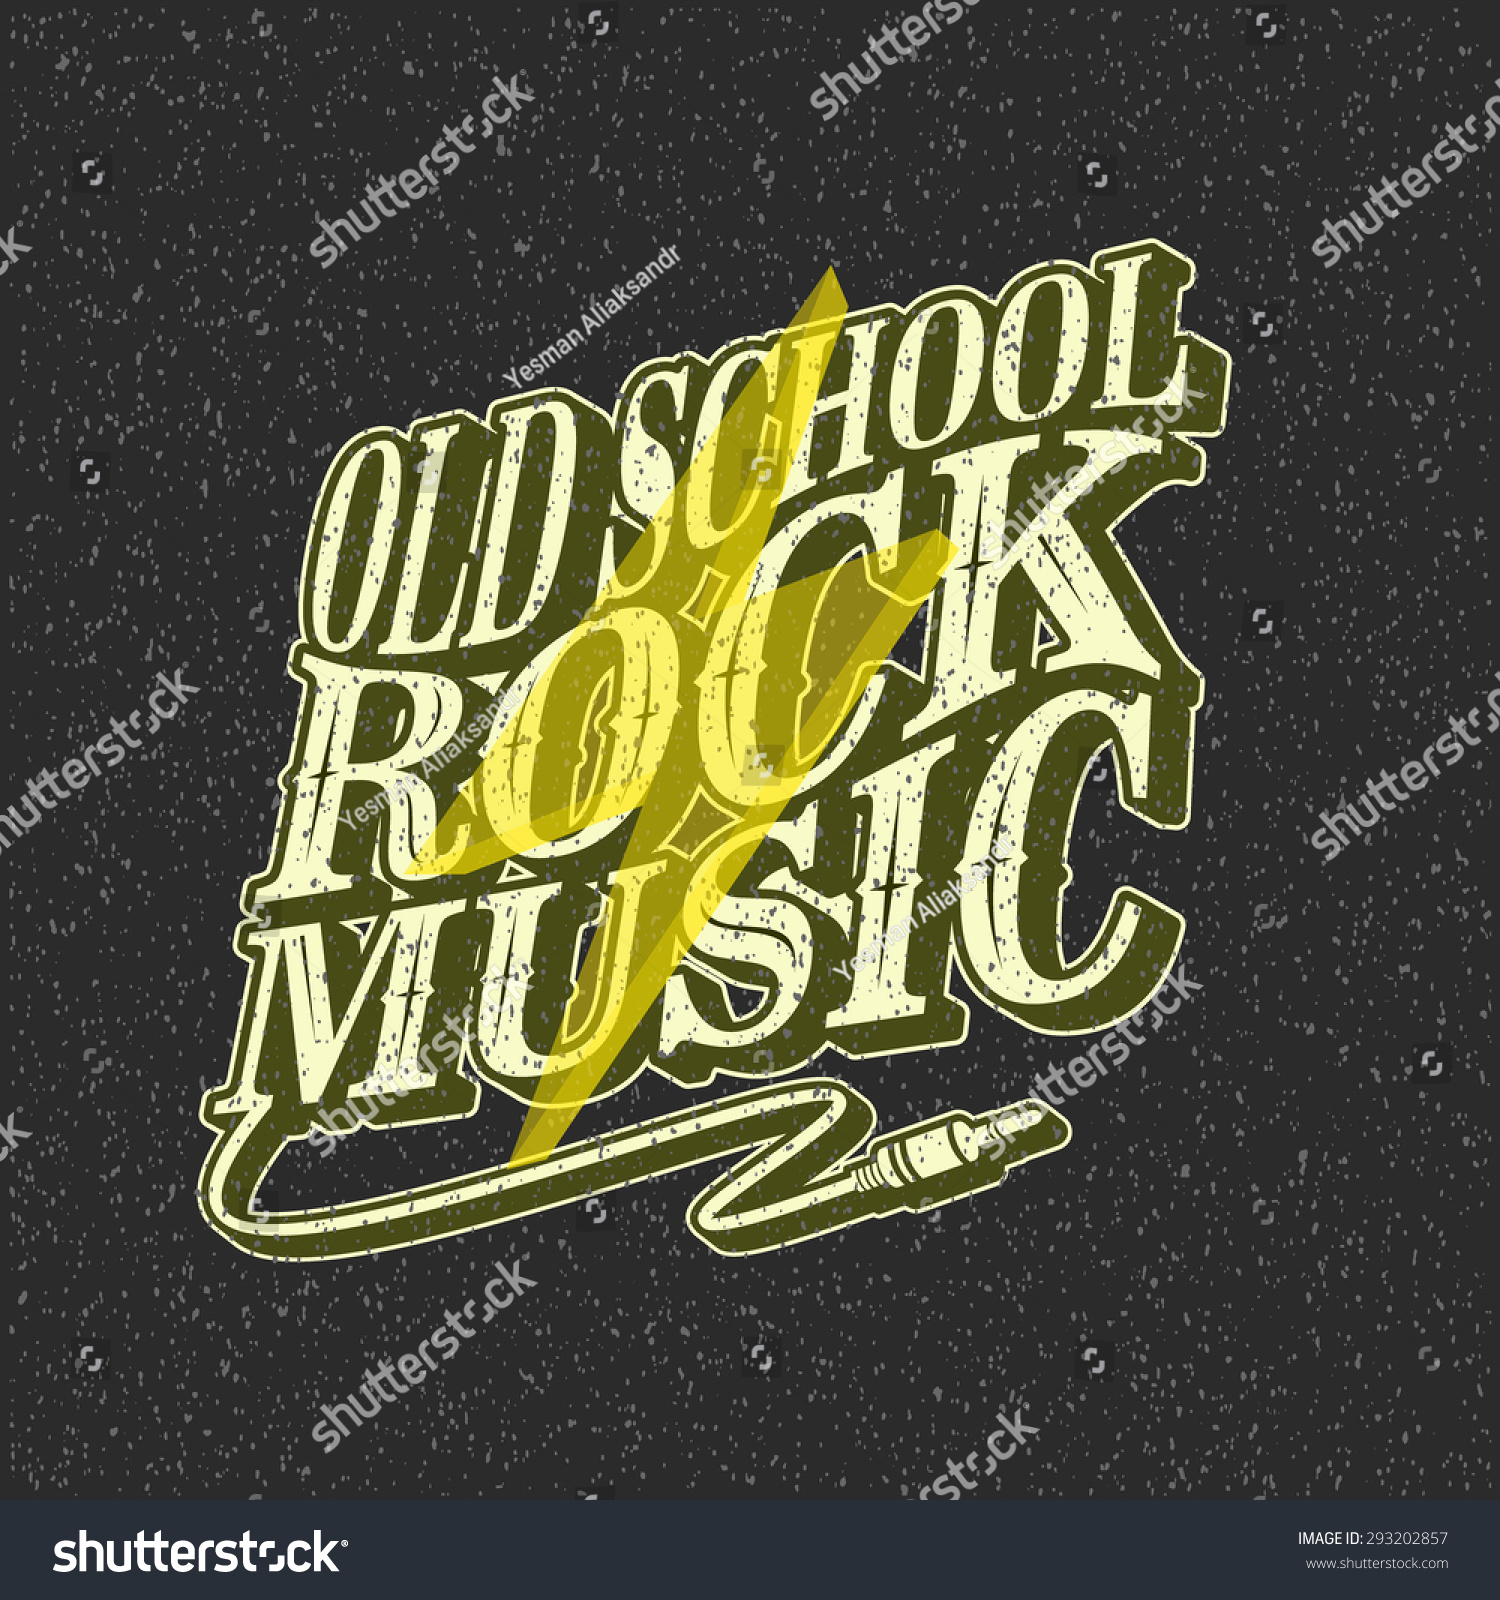 Vector illustration old school rock music stock vector for Schoolhouse music